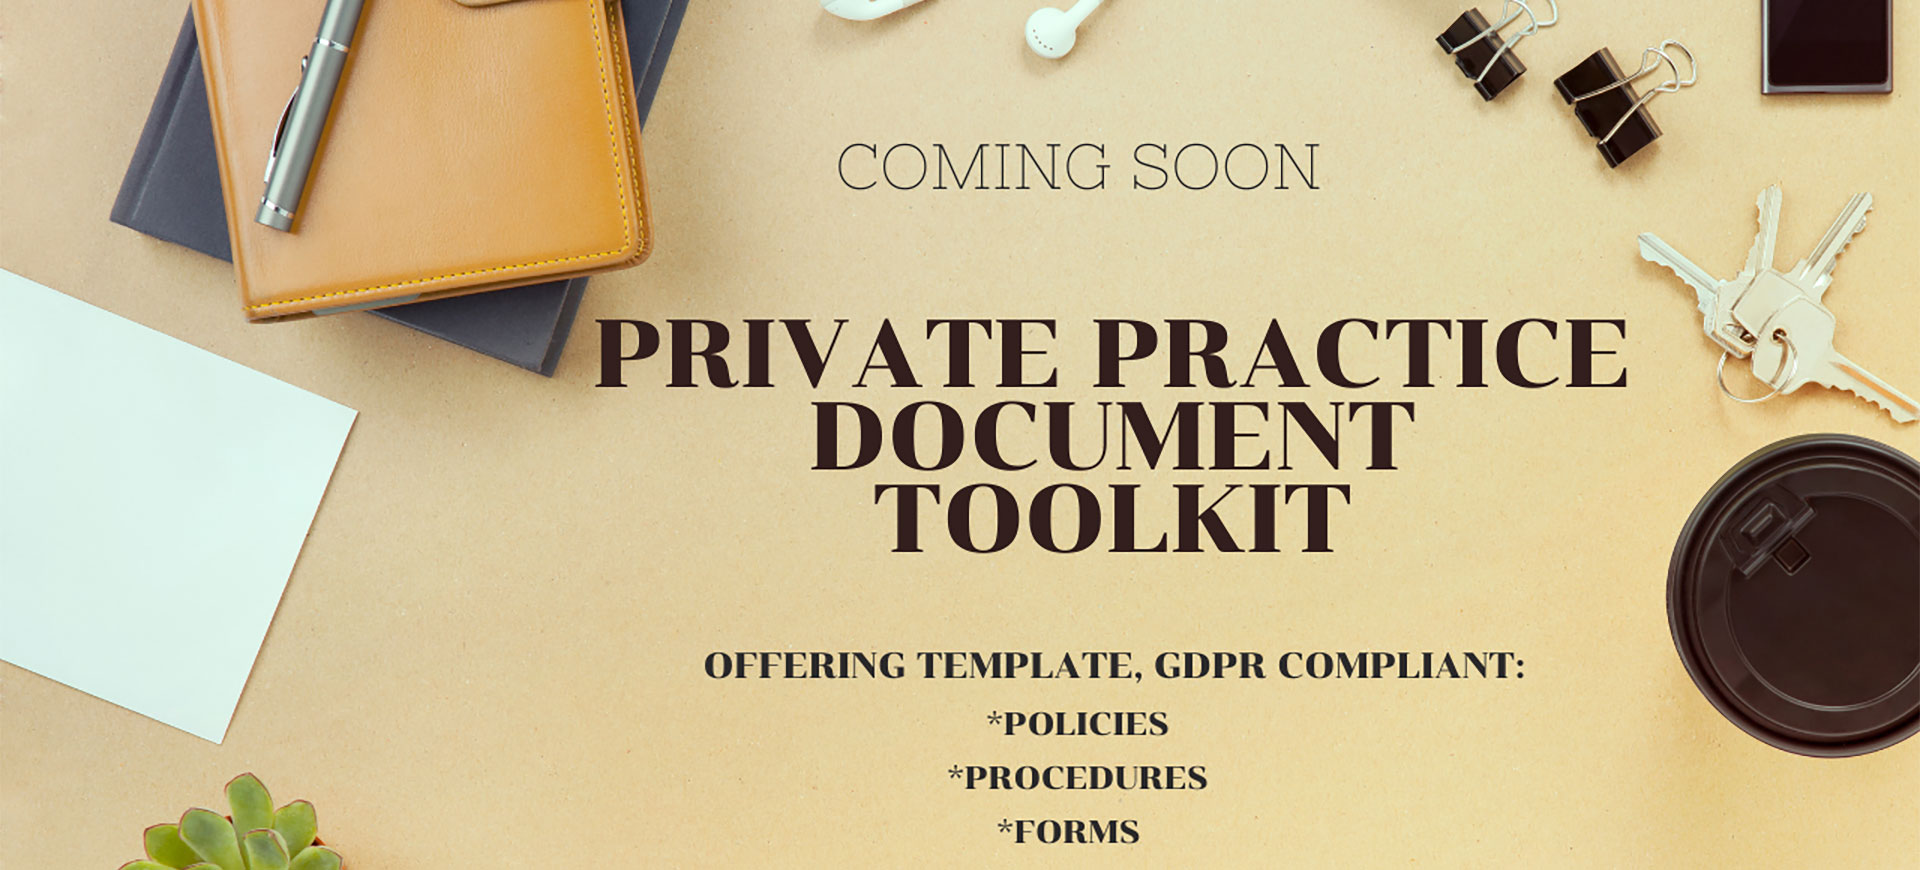 Private Practice Document Toolkit Yorkshire Psychotherapy